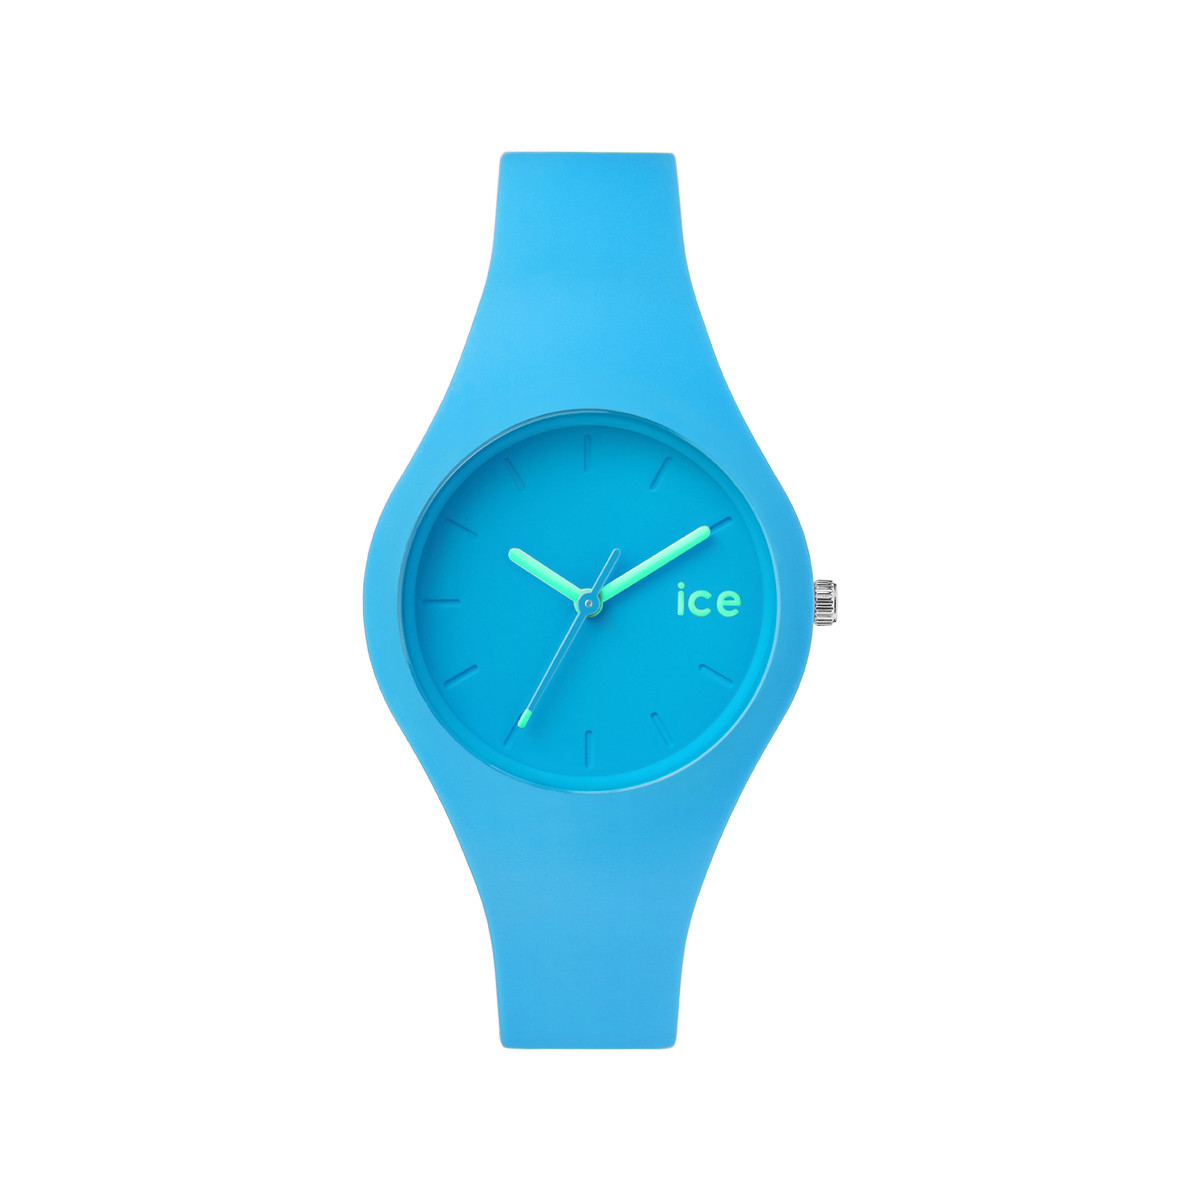 Montre Ice-Watch femme silicone bleu